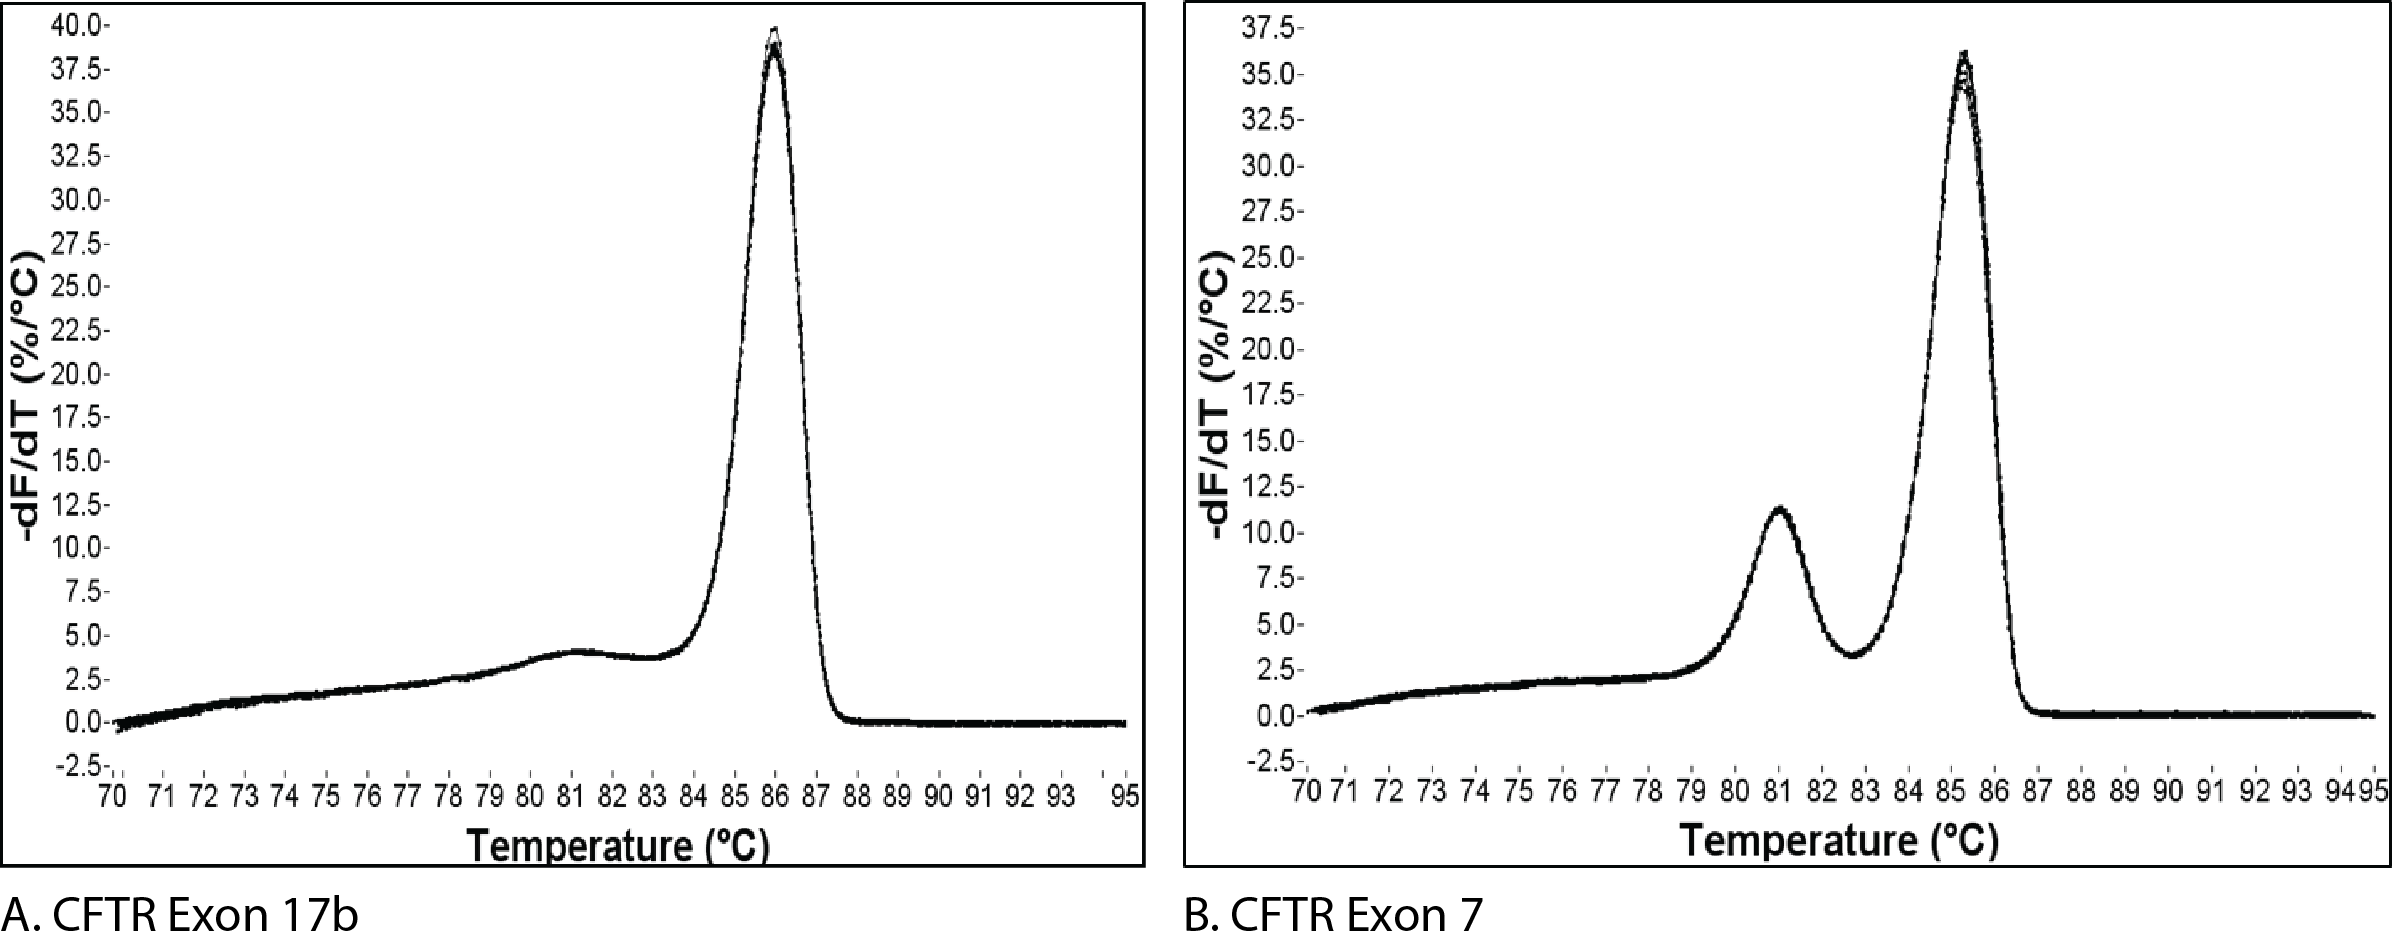 qPCR melt curves of CFTR gene